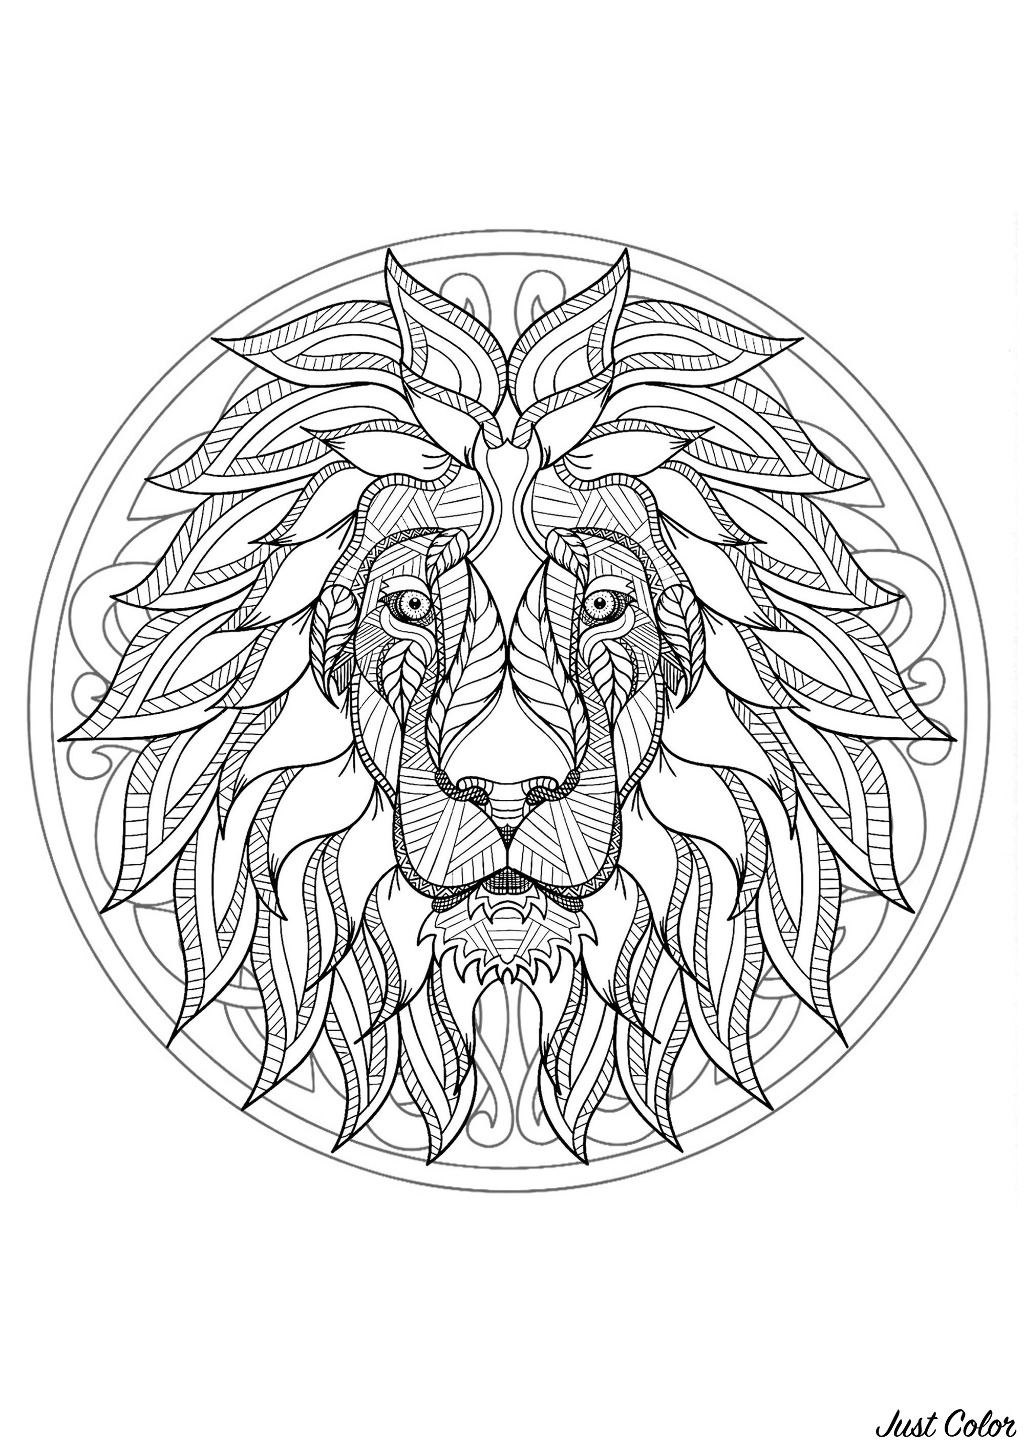 Coloring page with Lion head and beautiful Mandala in background